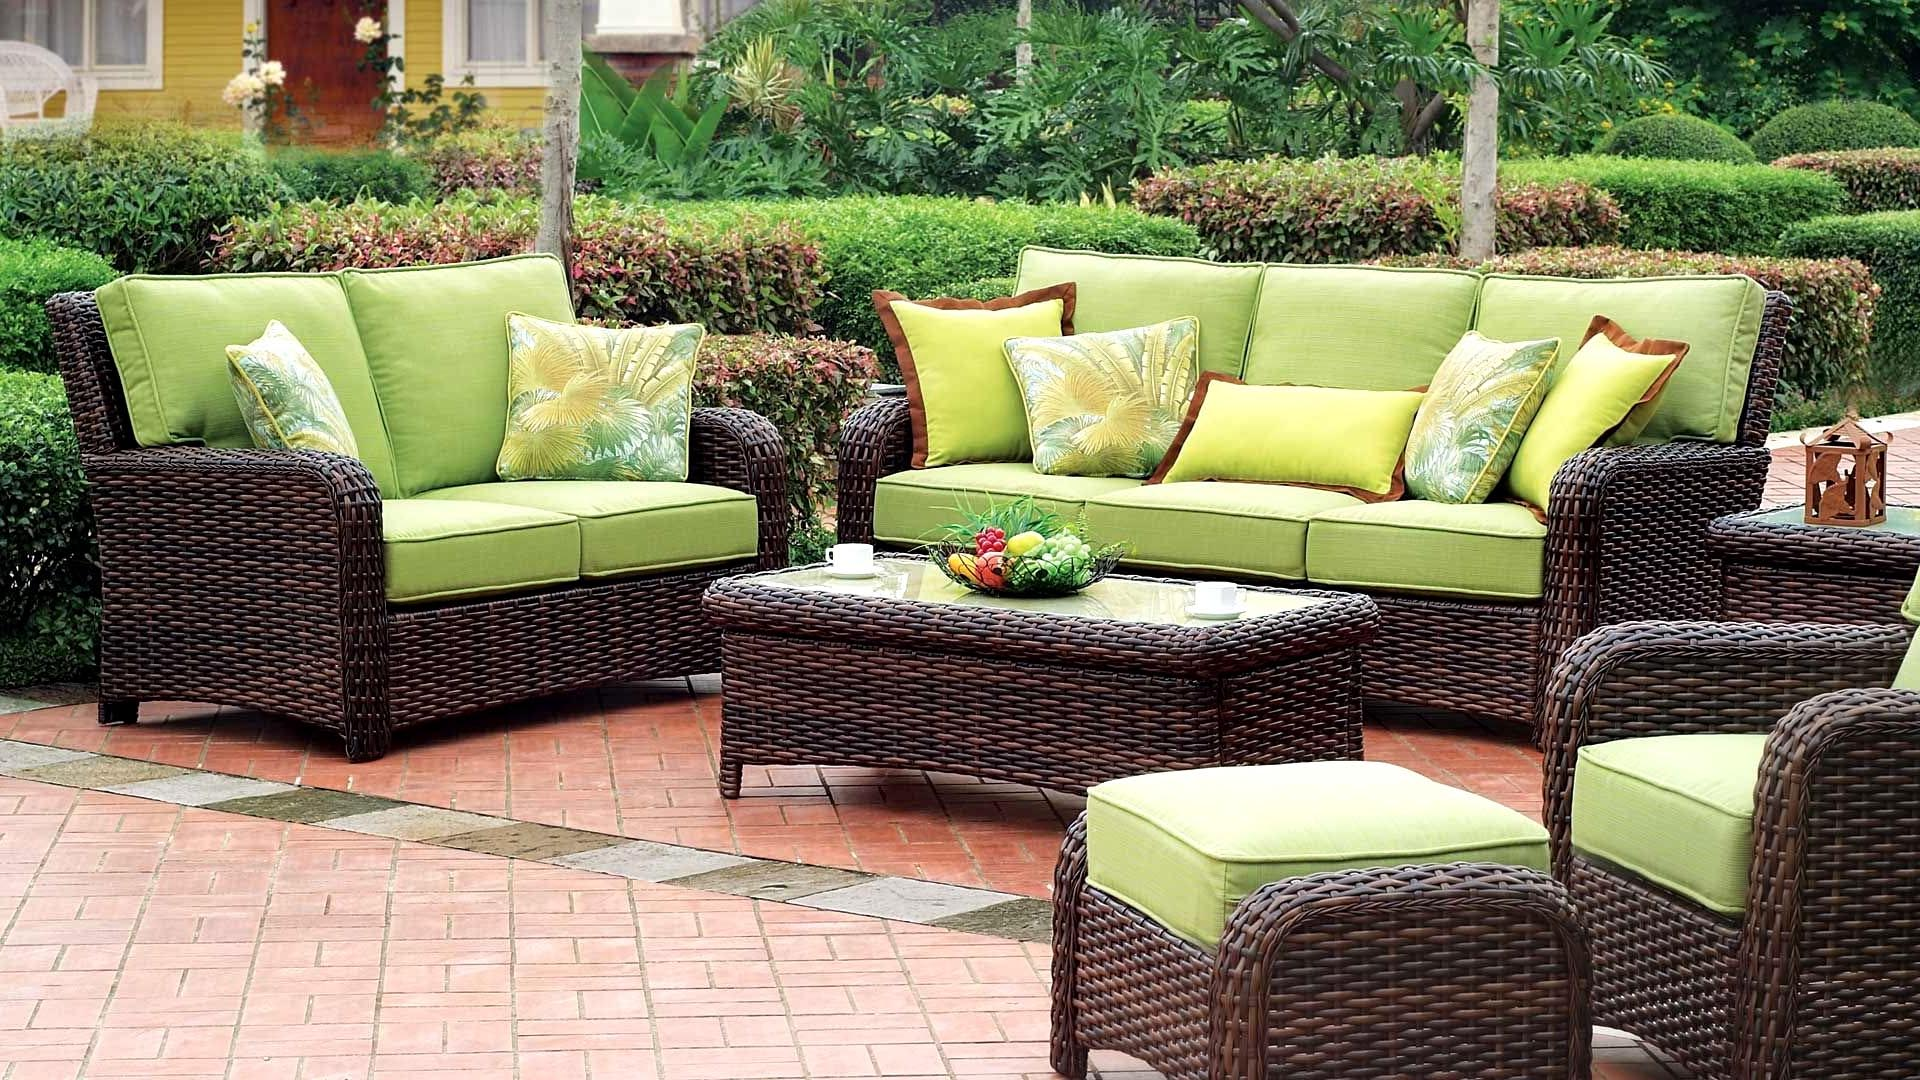 <h2>Little Furniture for Every Space</h2><p>Garden Furniture</p>